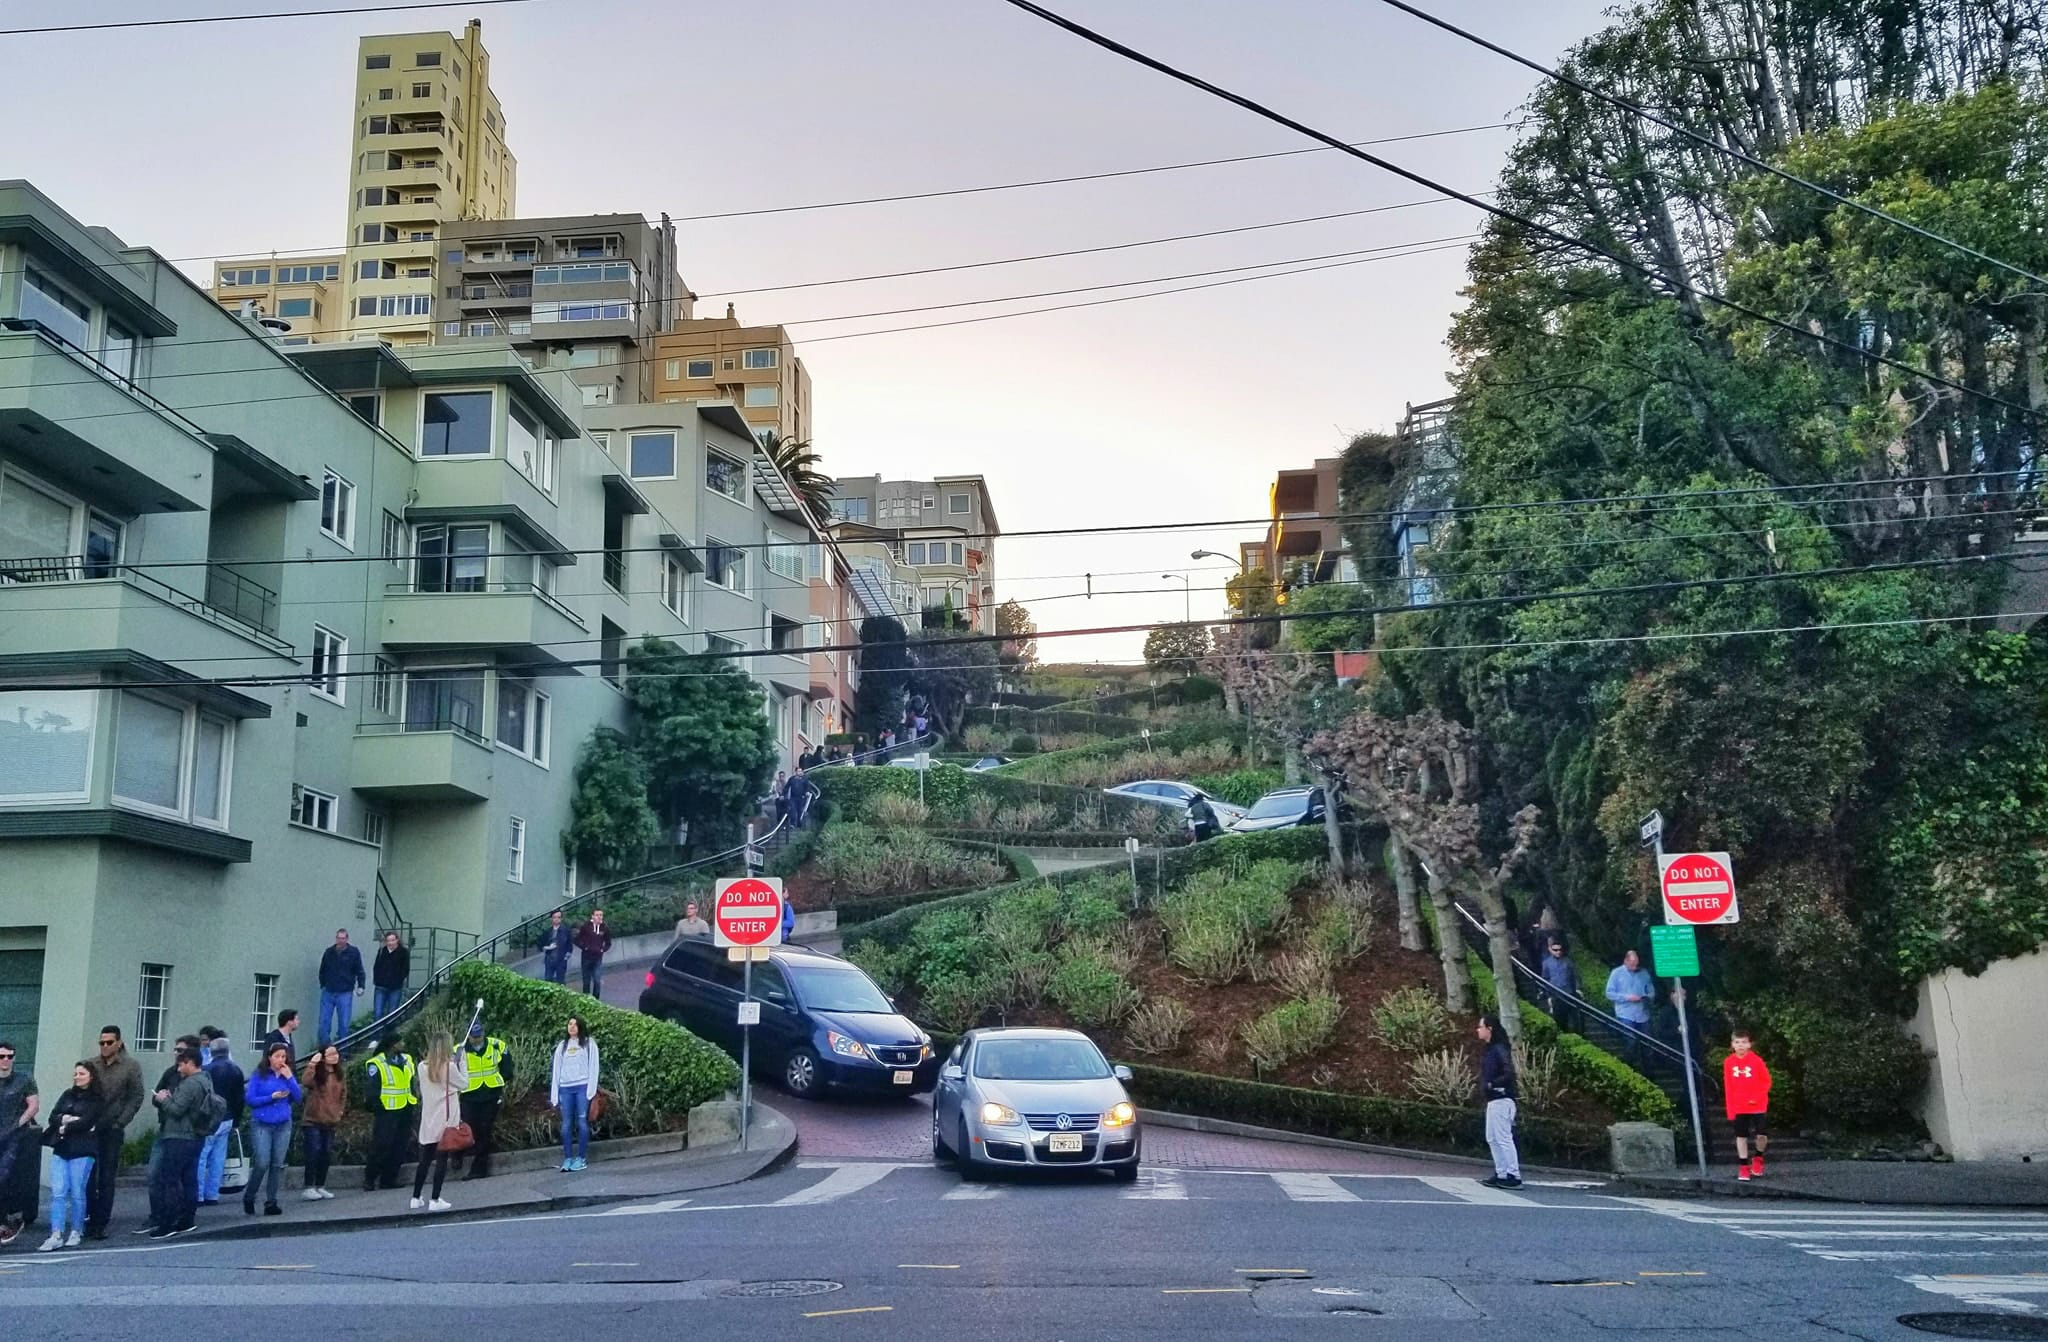 San Francisco in one day - Lombard Street